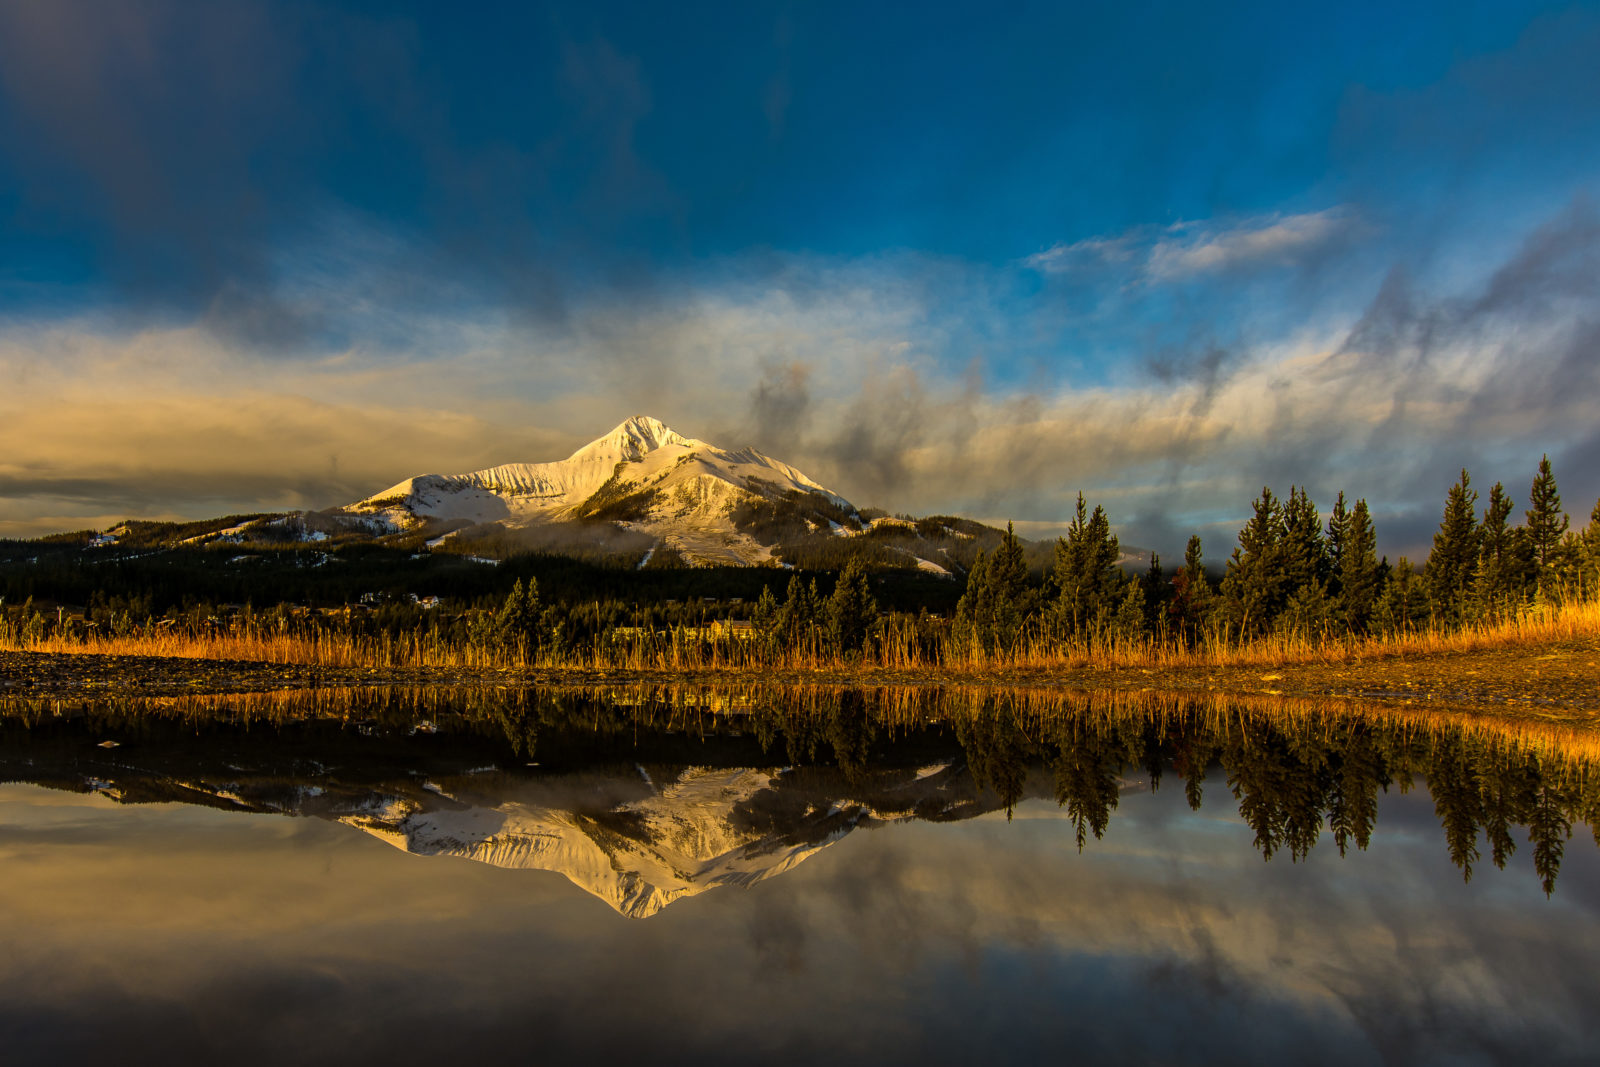 Mountain in a Mud Puddle